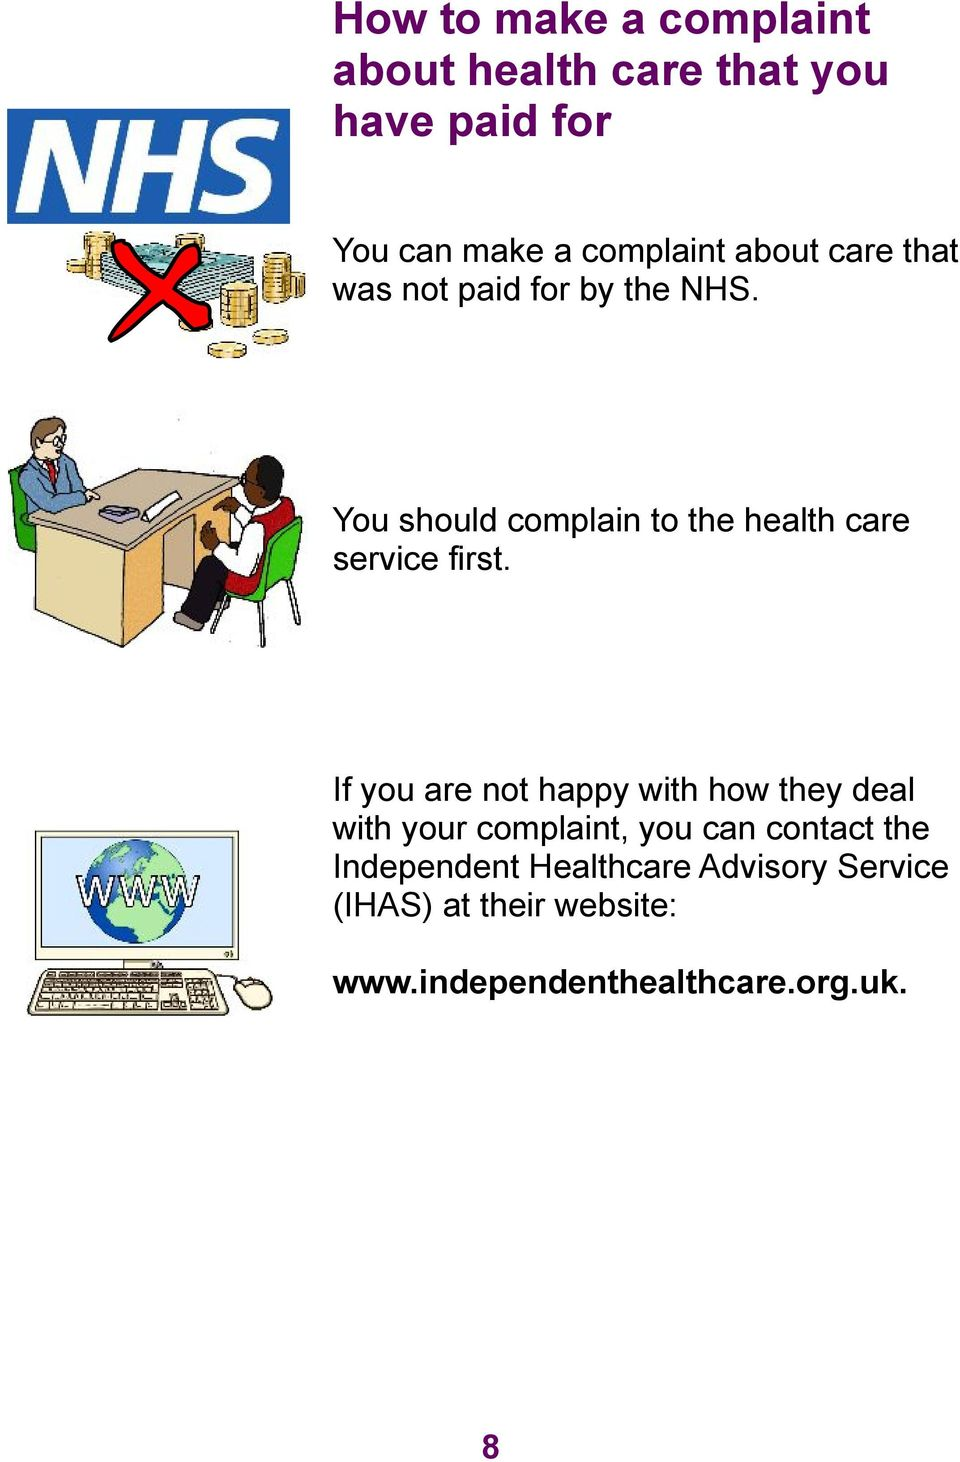 You should complain to the health care service first.